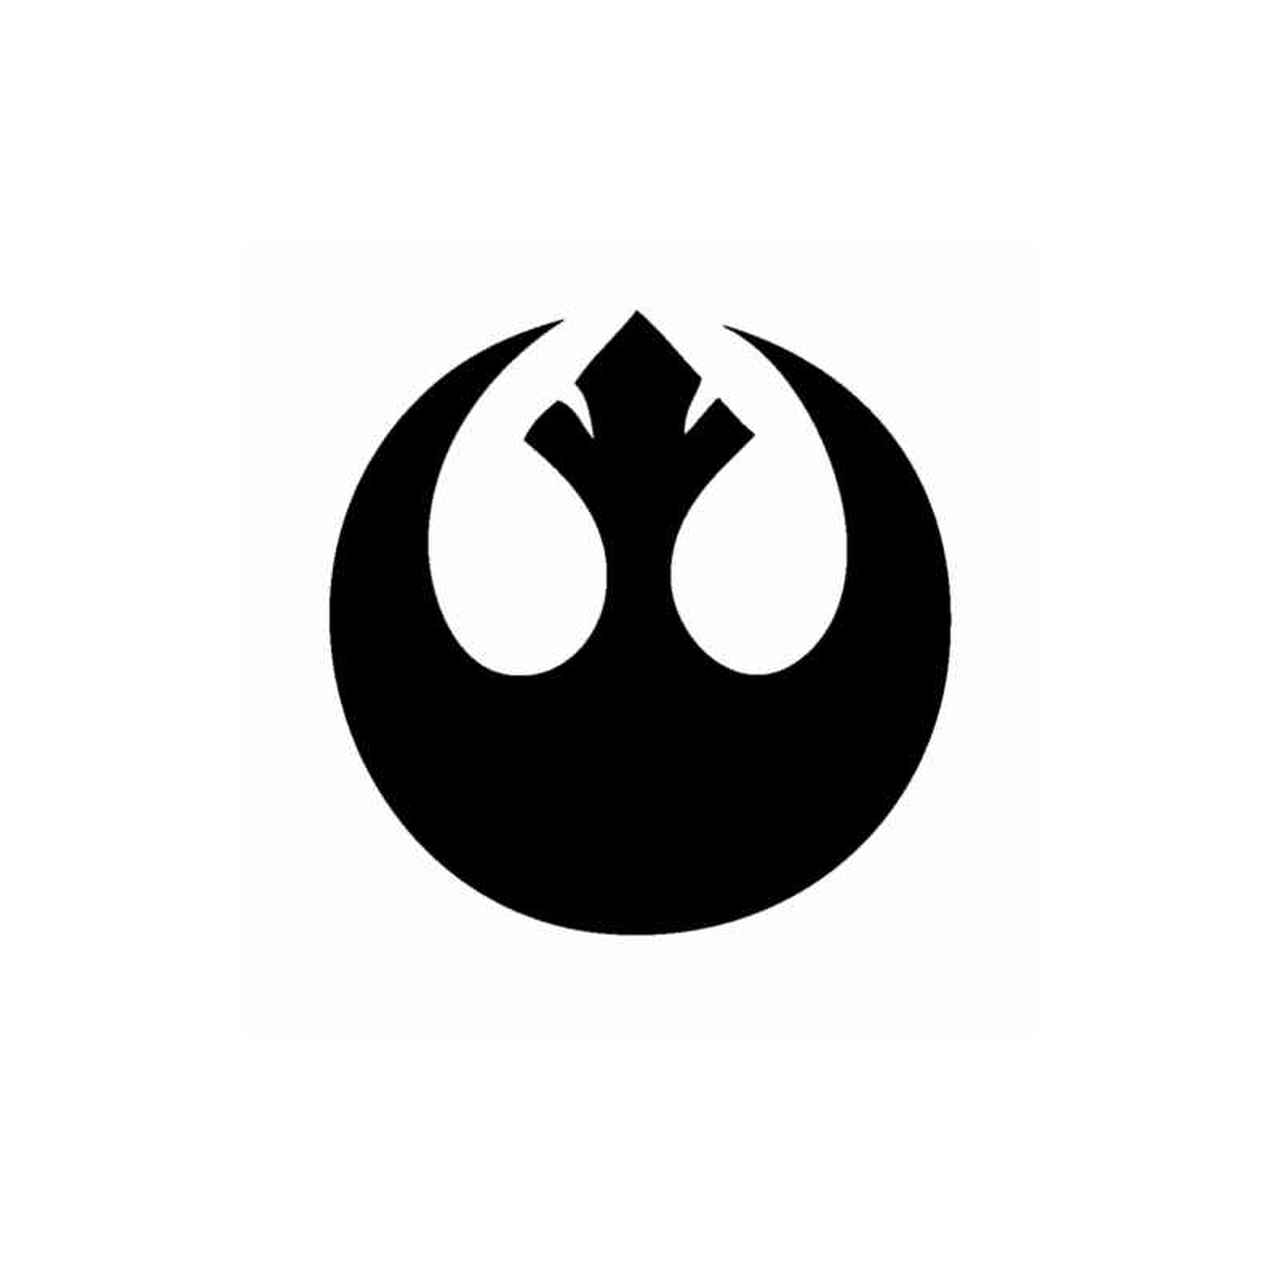 Star Wars Rebel Alliance Logo Decal.